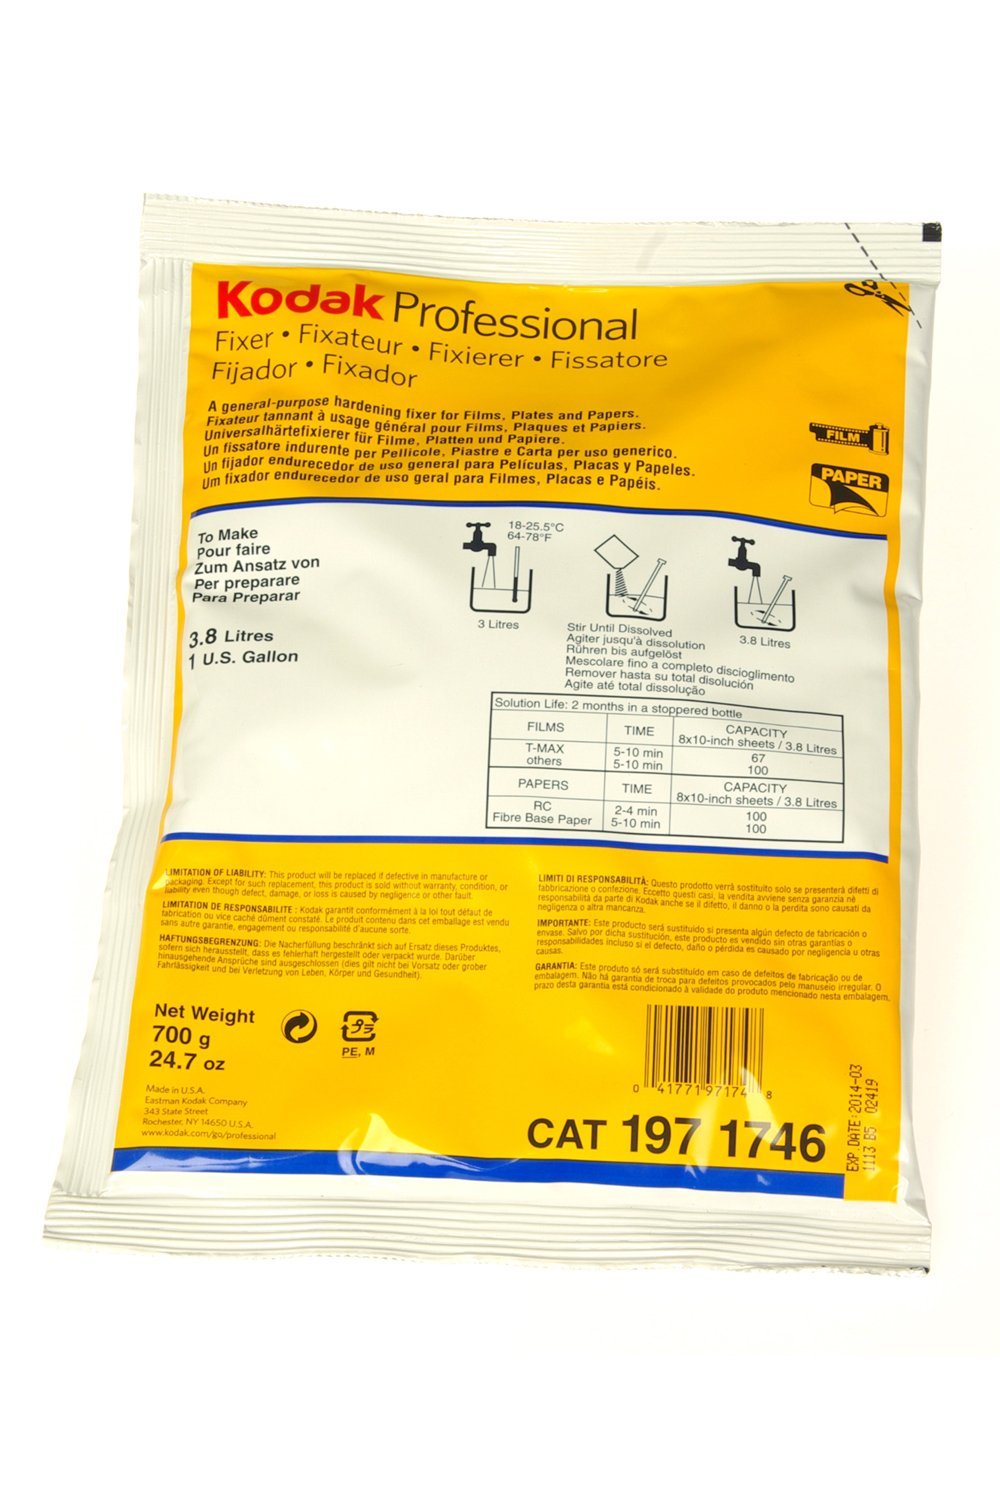 Fixer for Paper and Film, 1Gallon Mix by Kodak